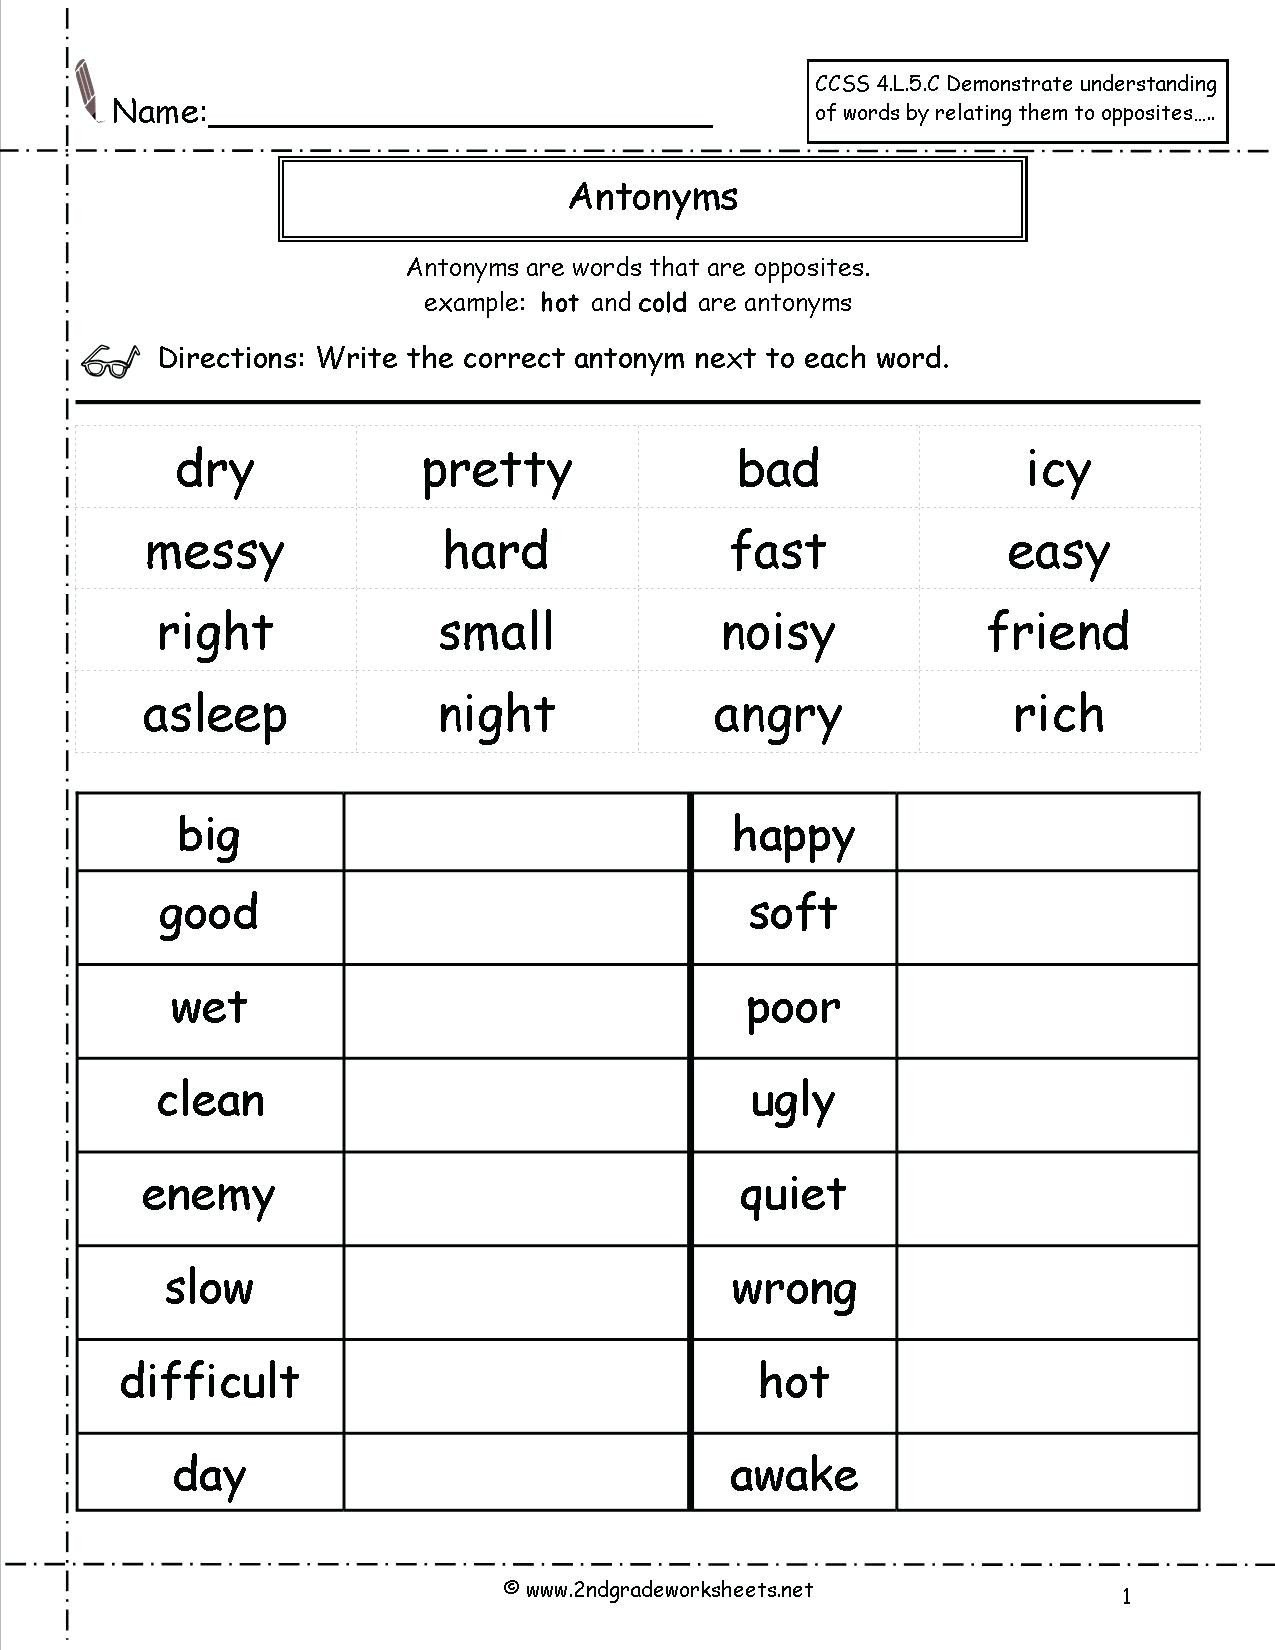 Synonyms Worksheet First Grade Antonyms for First Grade